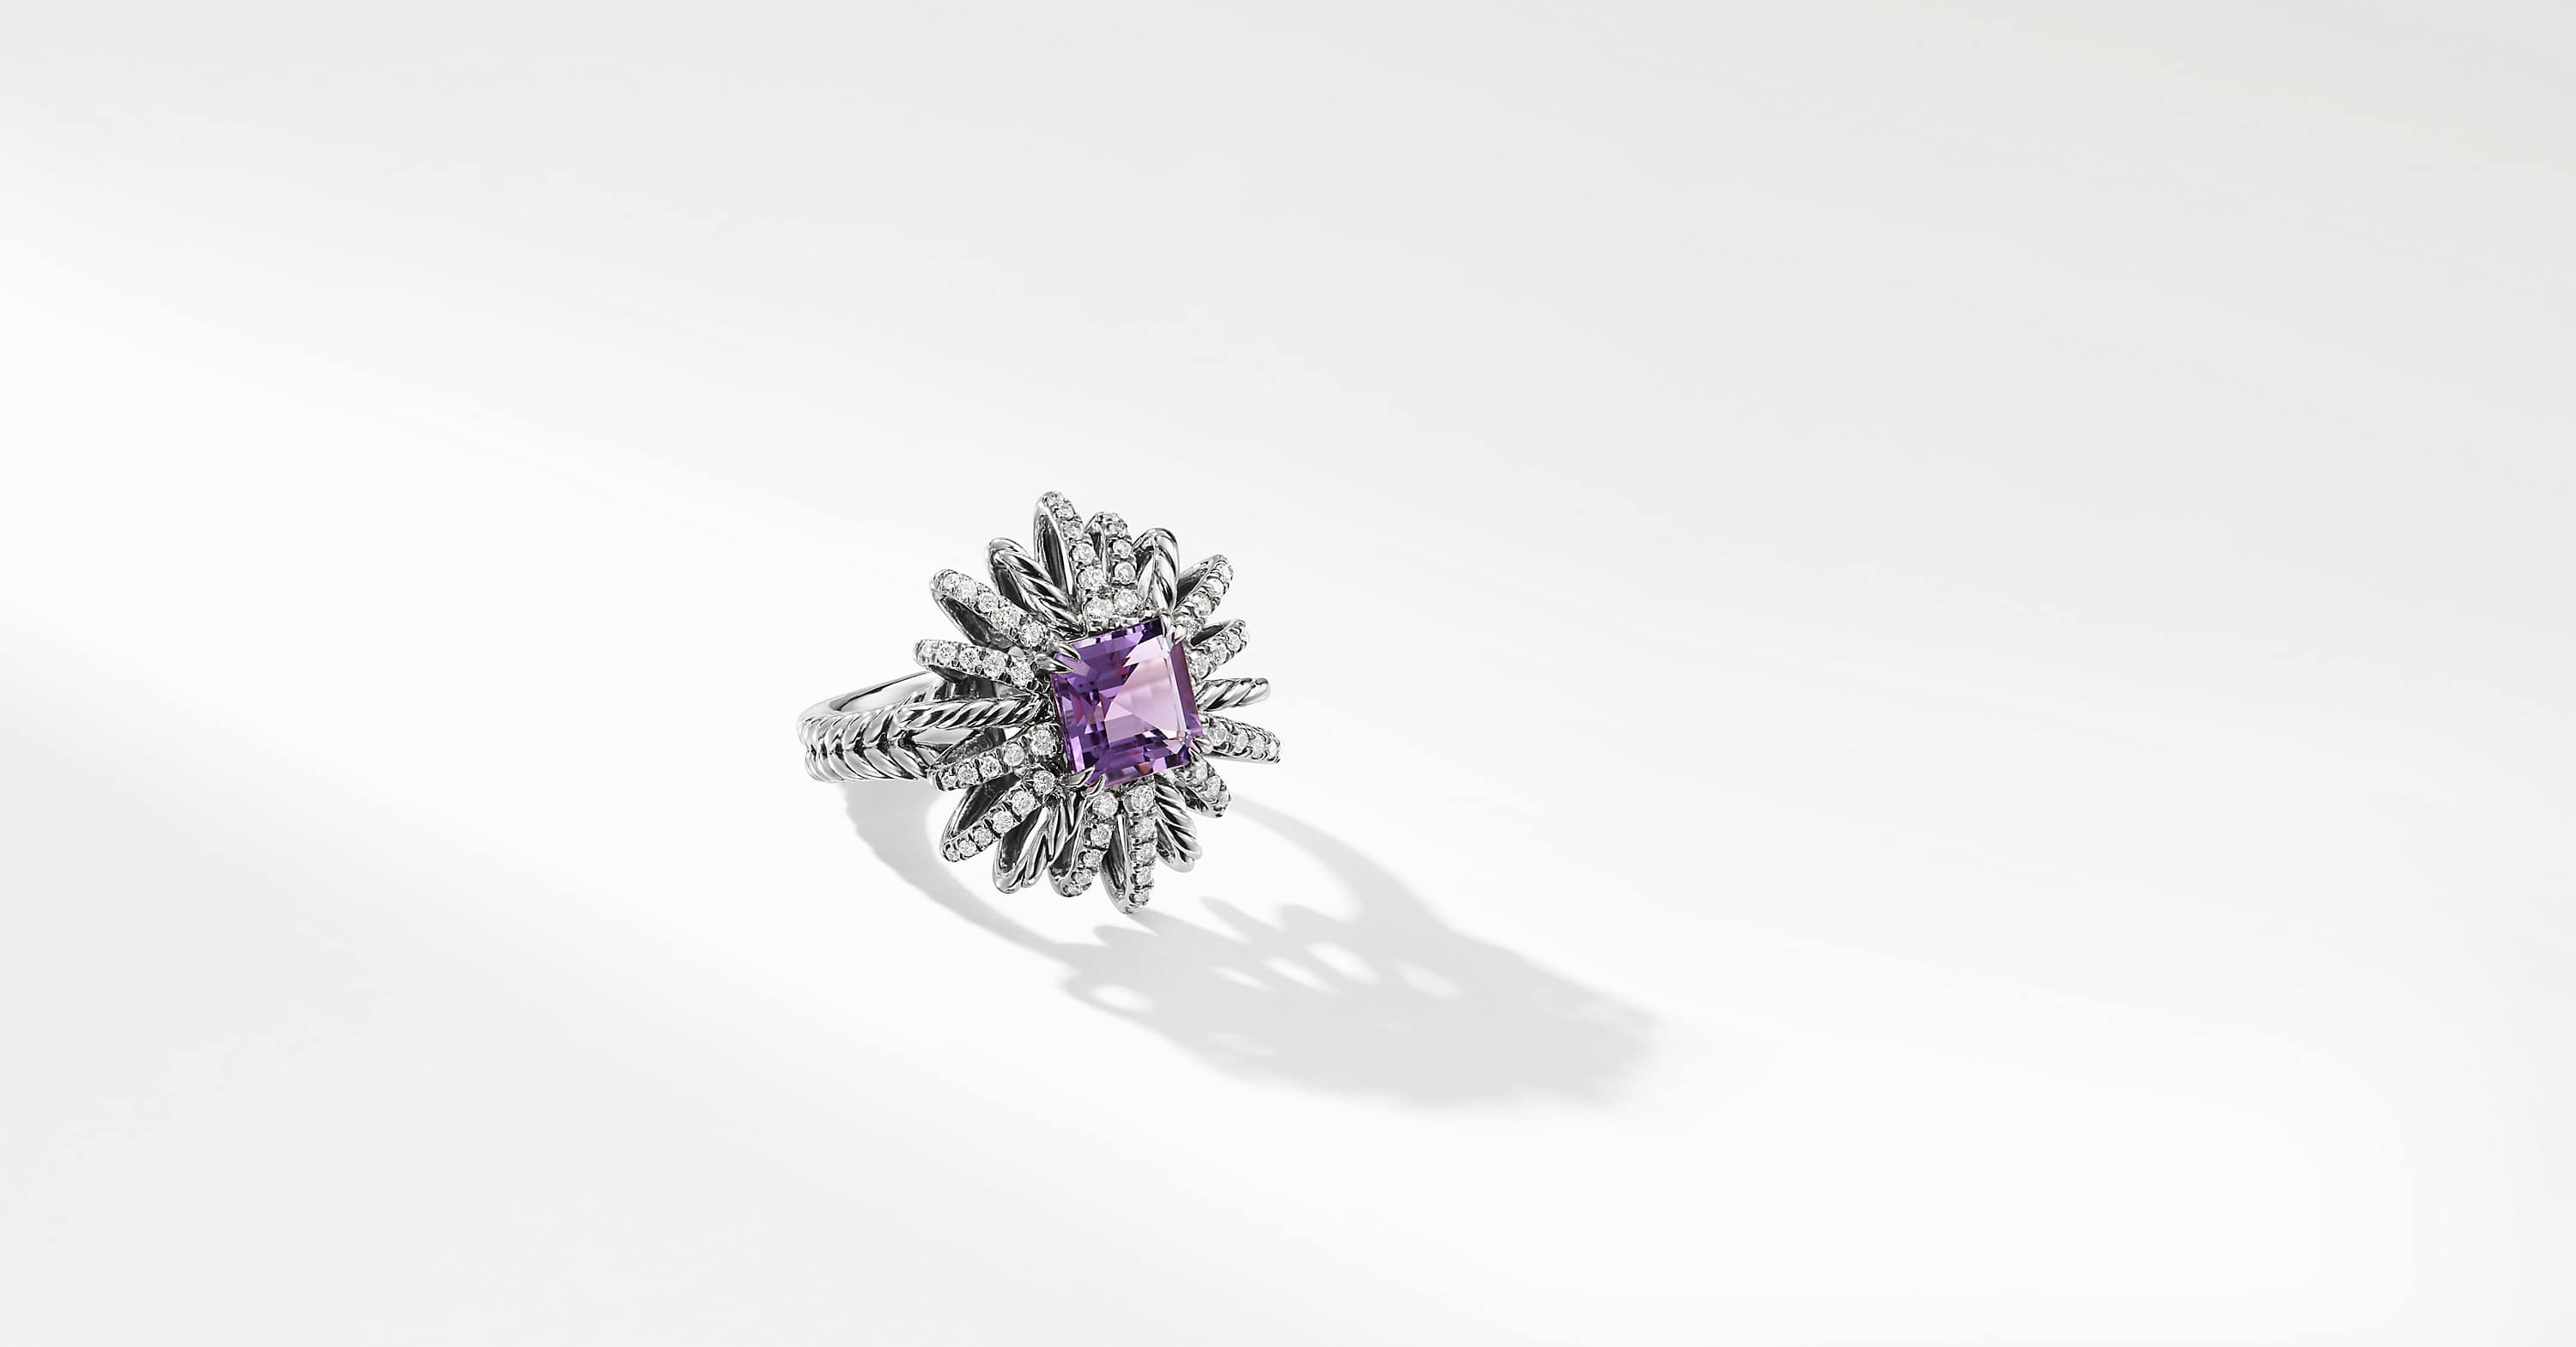 Starburst Ring with Diamonds in Silver, 23mm